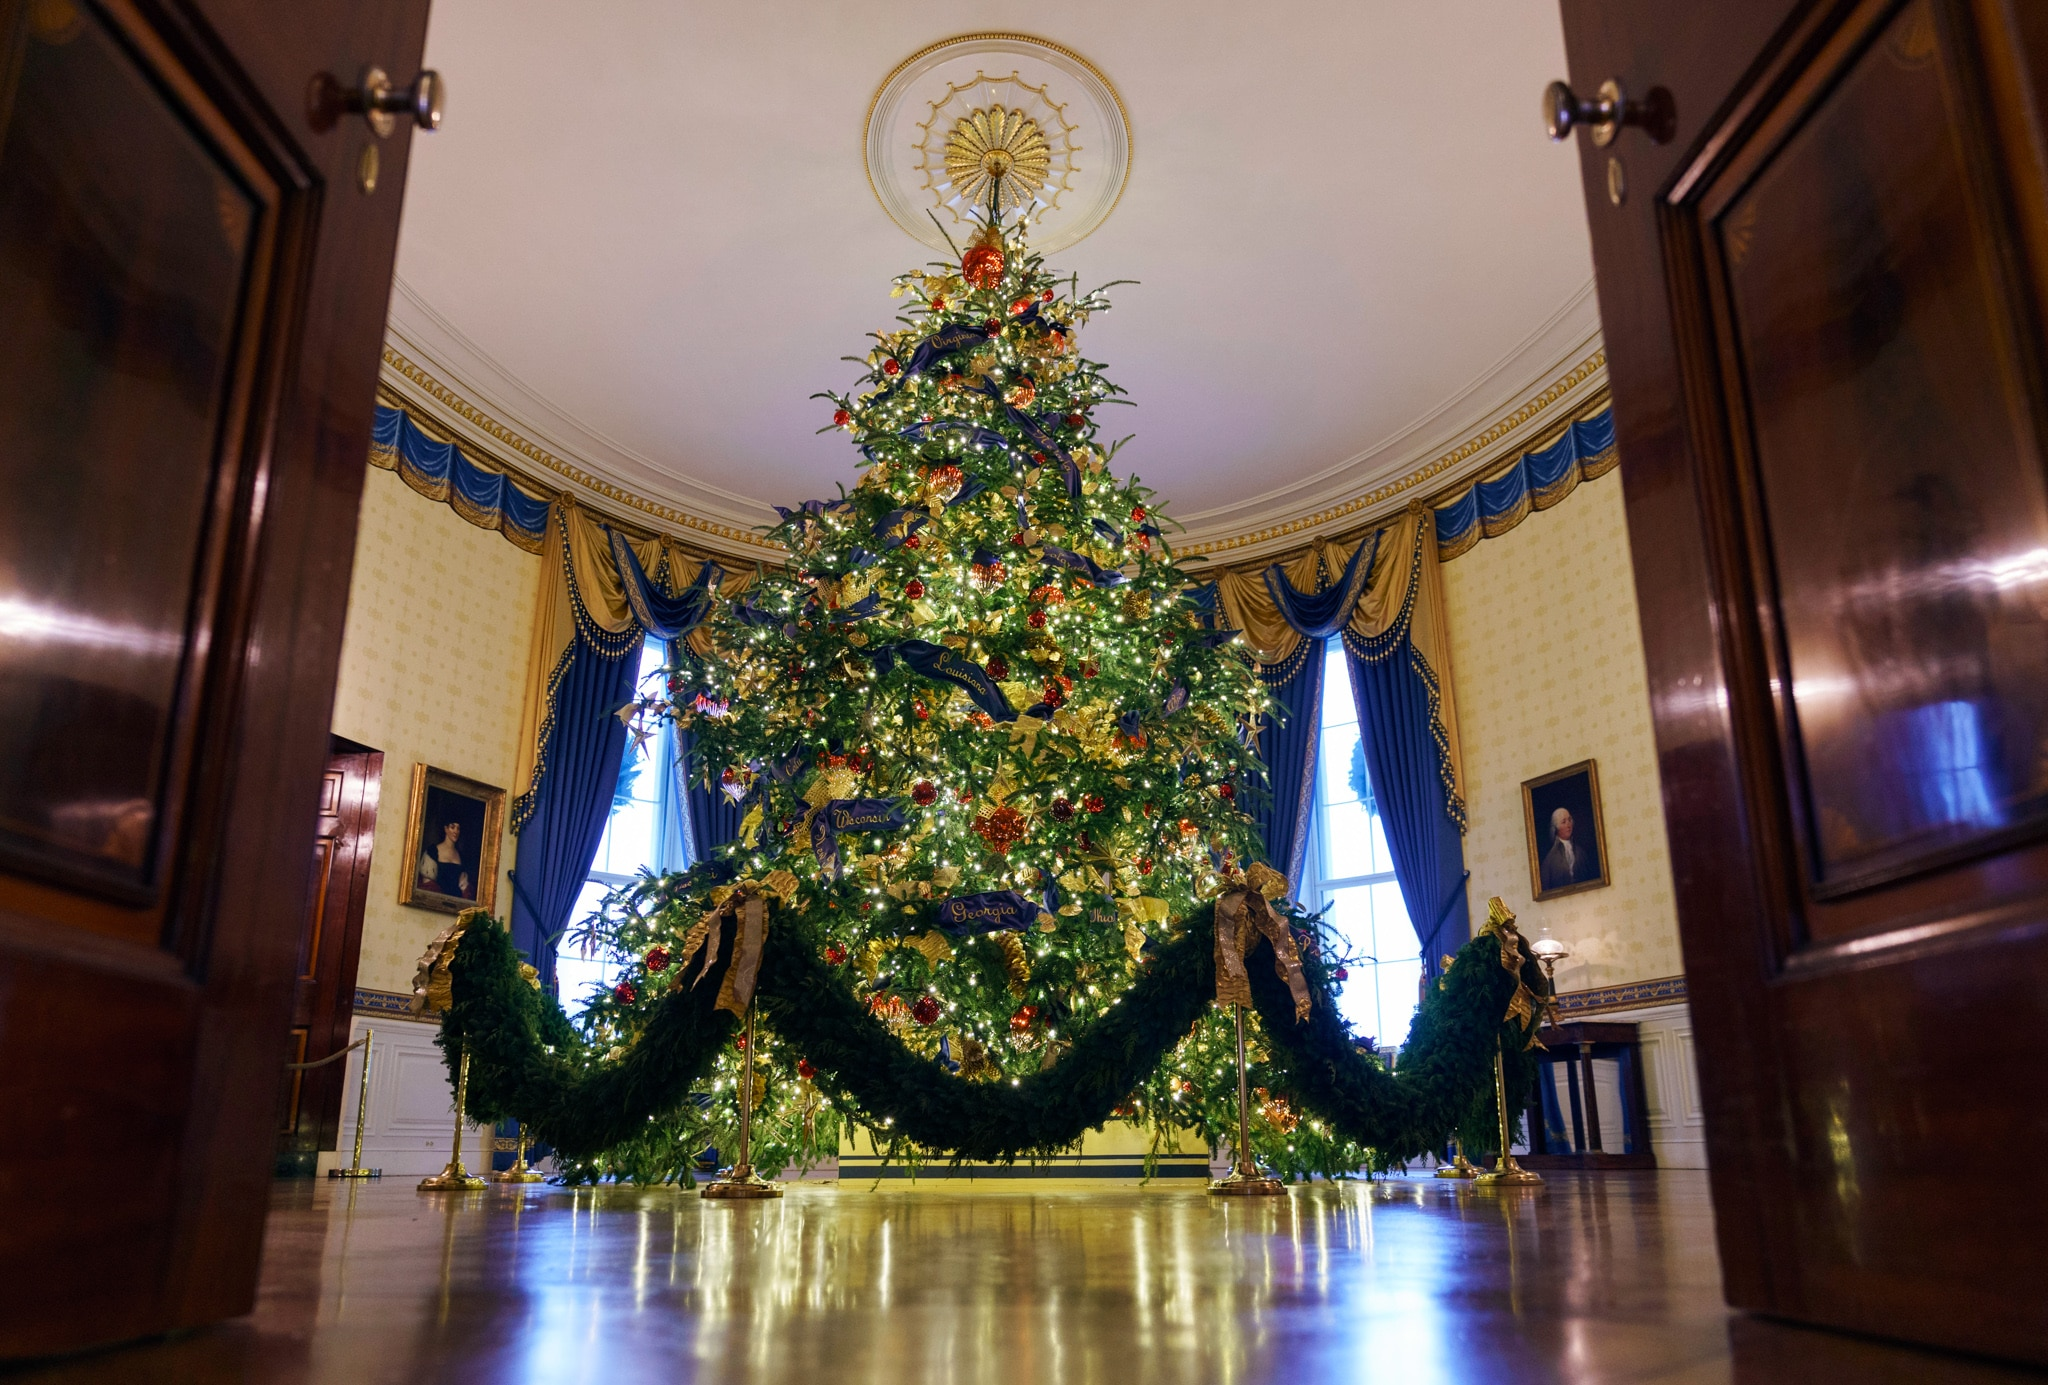 Christmas tree standing in room with blue curtains (©Carolyn Kaster/AP Images)